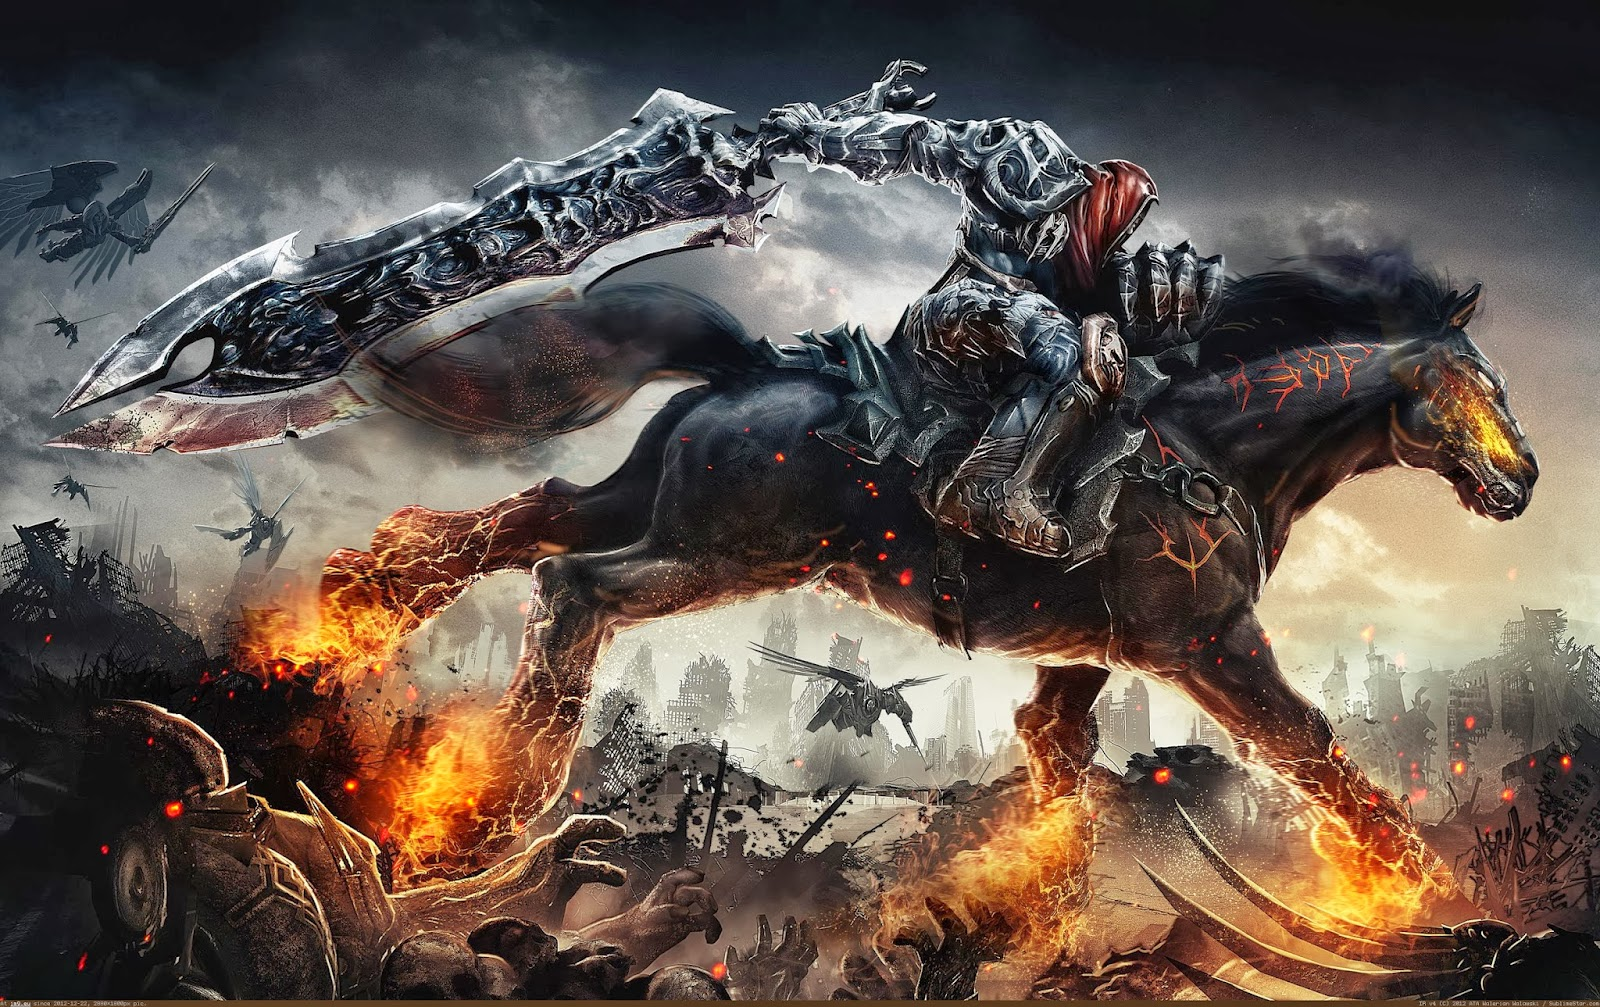 Top   Wallpaper Horse Ghost Rider - Unik18  Perfect Image Reference_983283.jpg